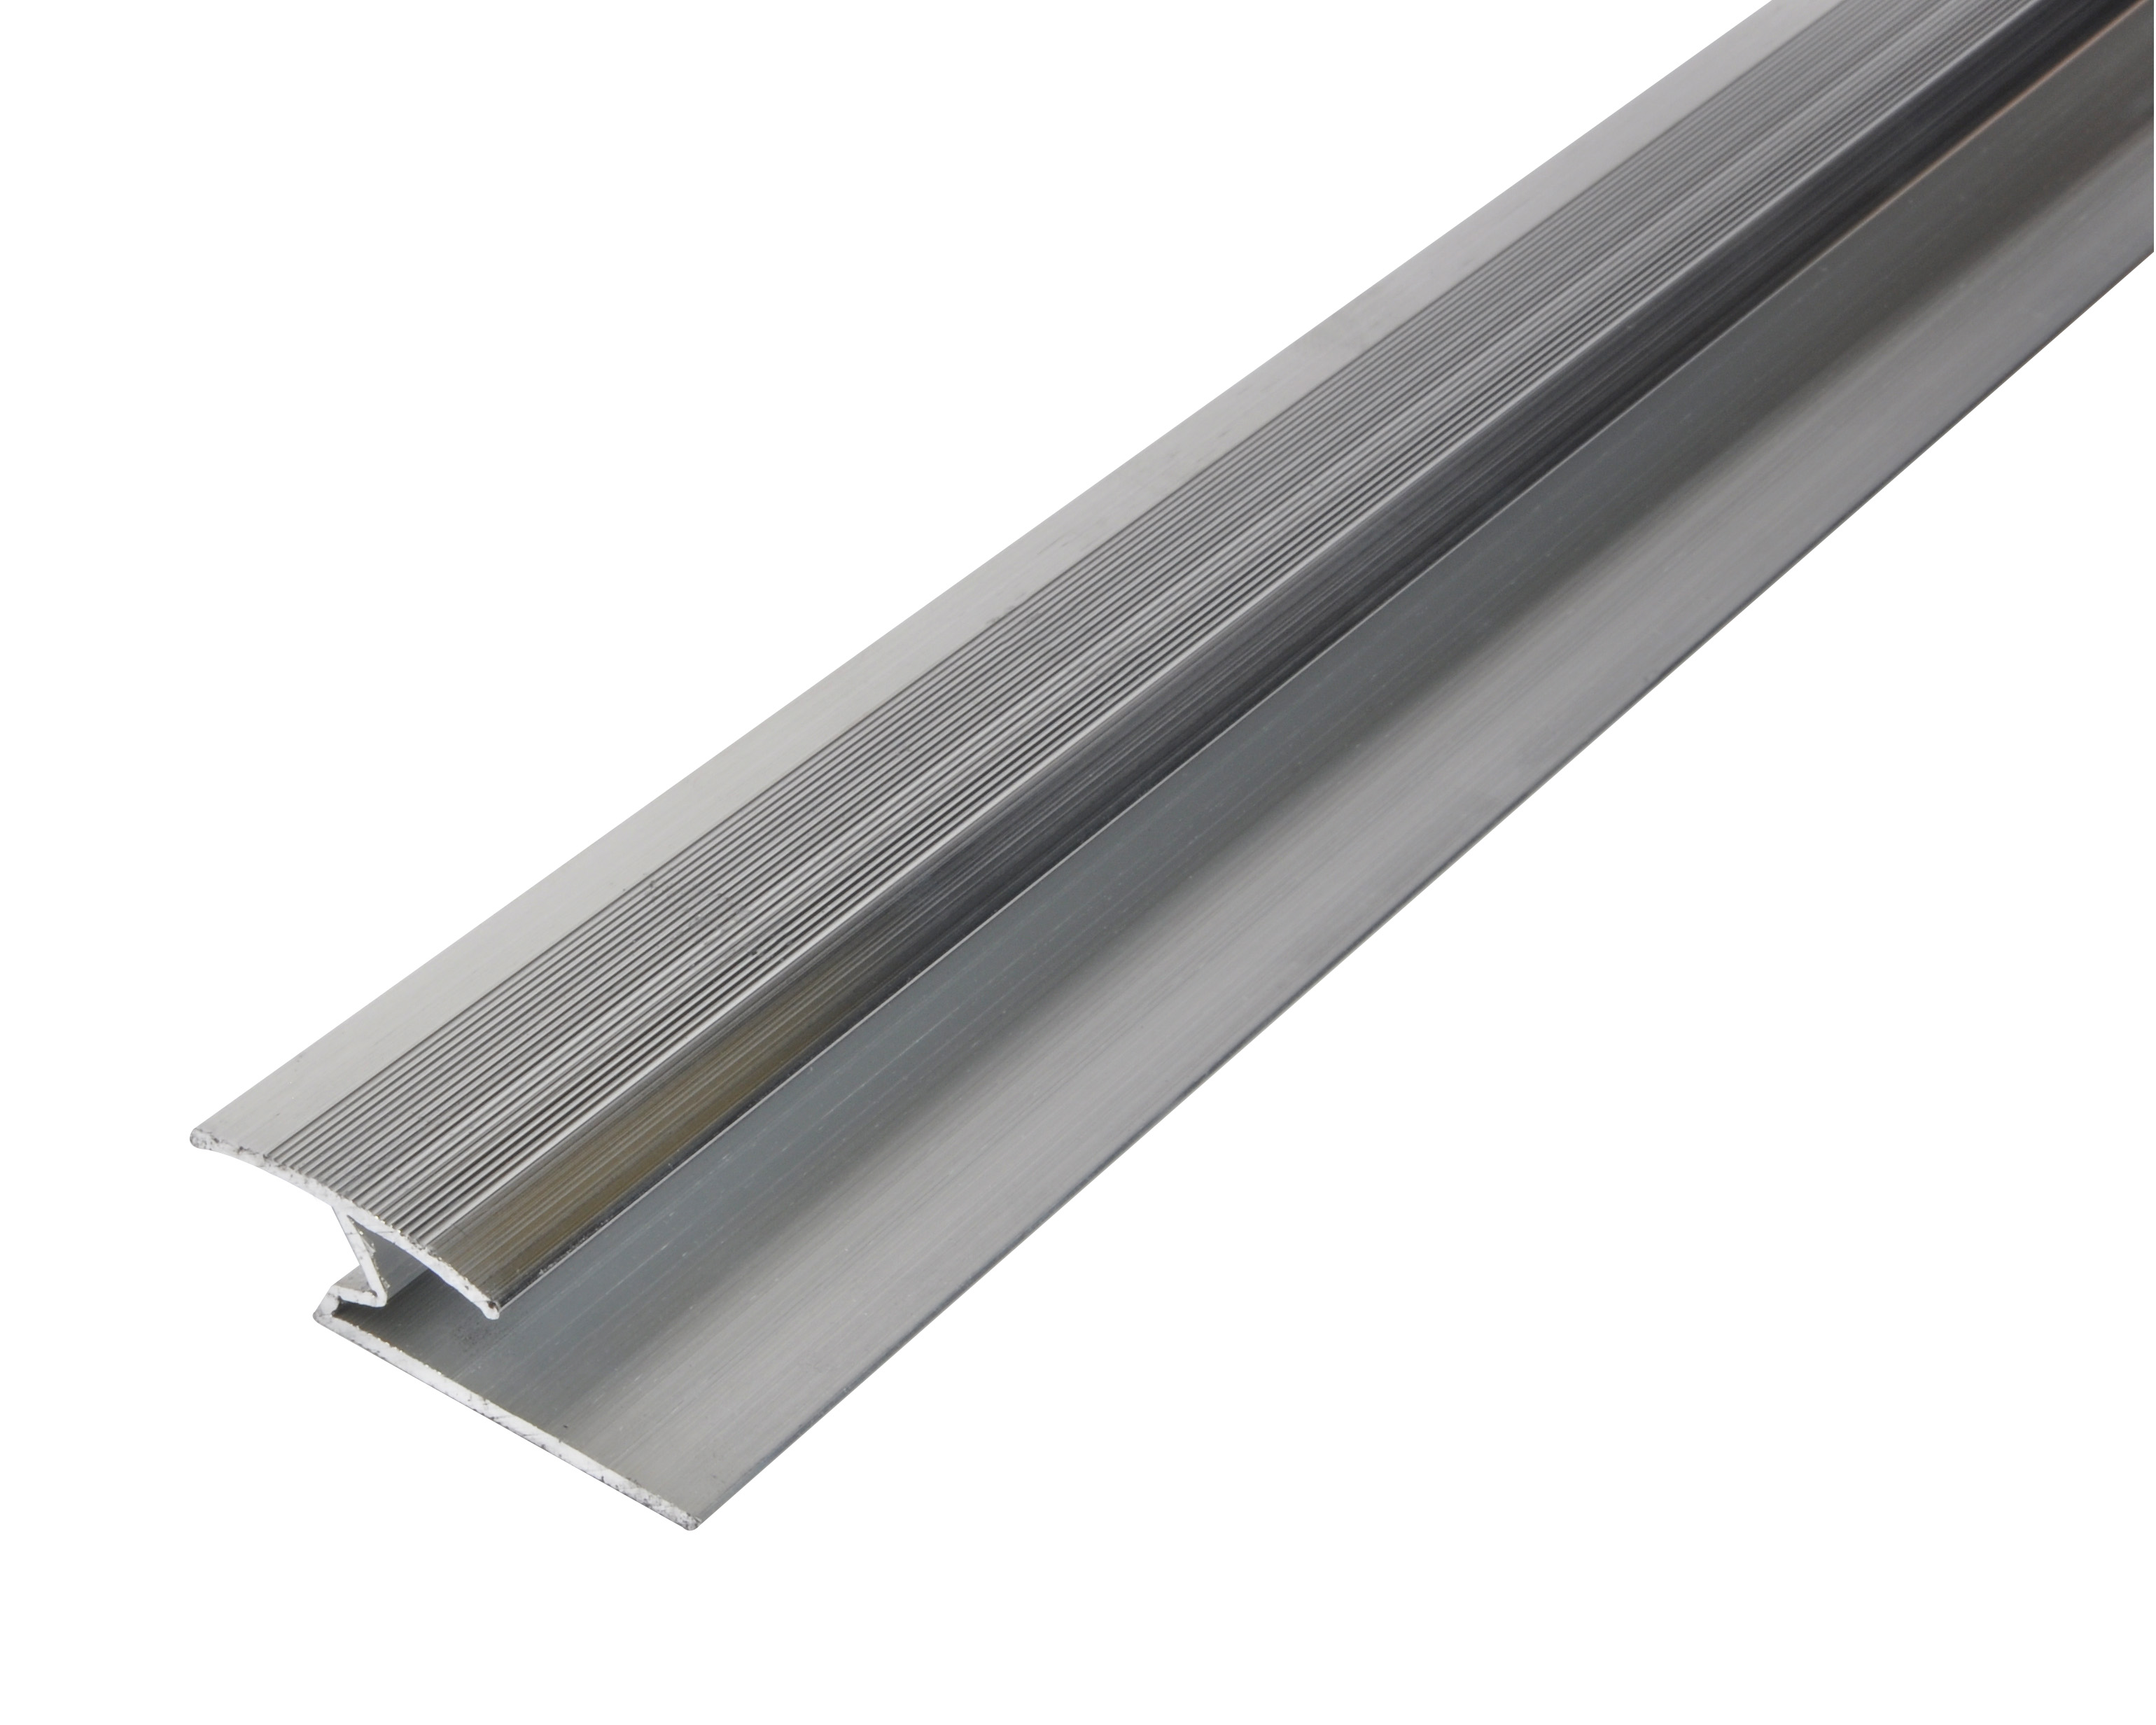 Laminate to Laminate Cover Strip Cermaic Silver 900mm